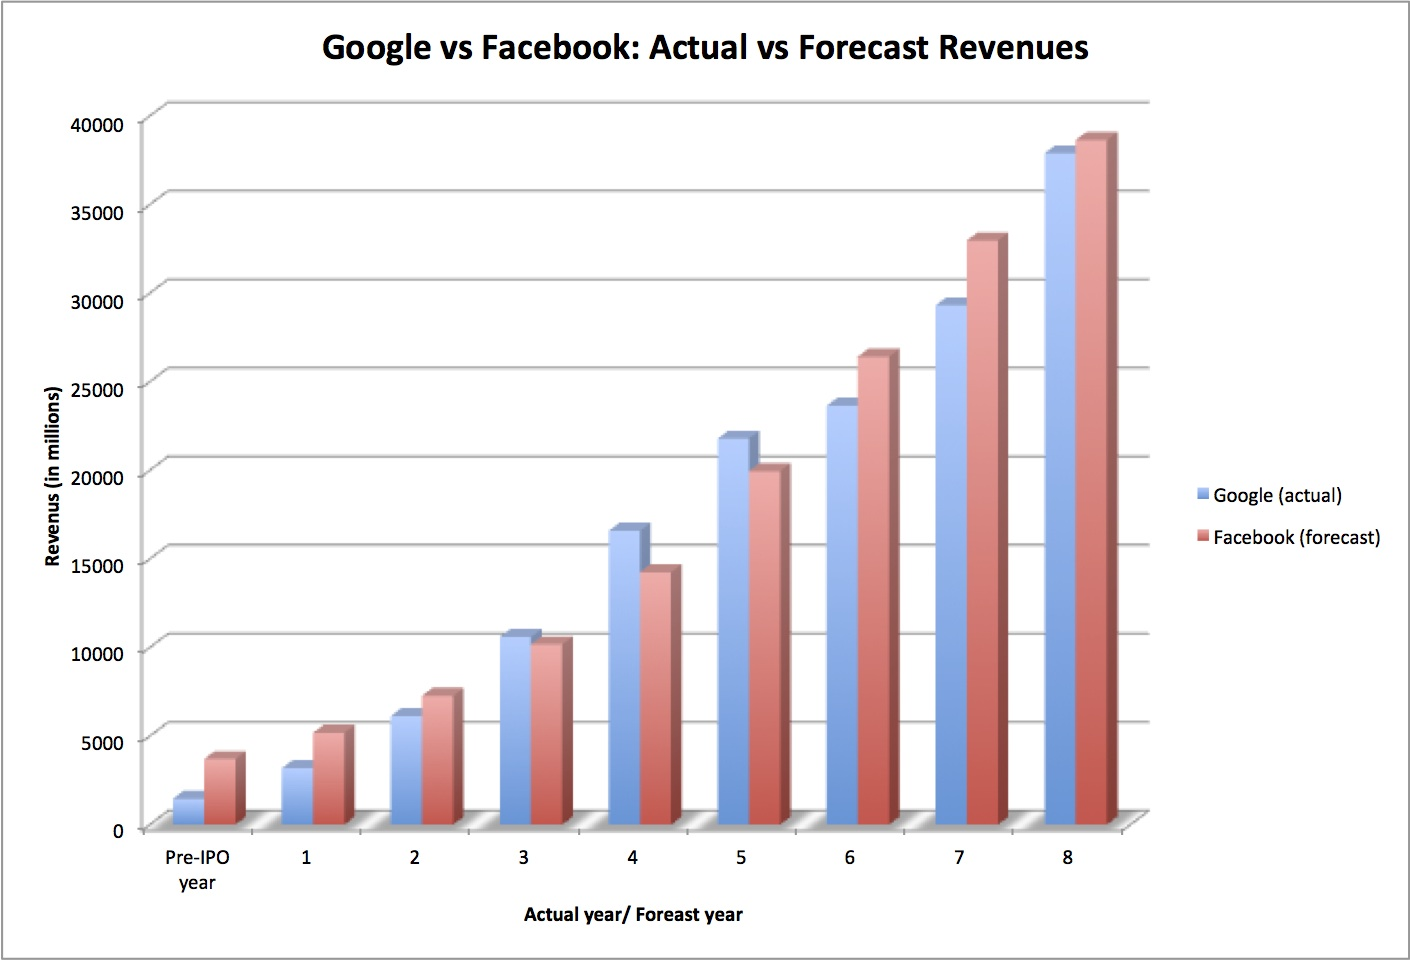 Musings on Markets: The IPO of the decade? My valuation of Facebook